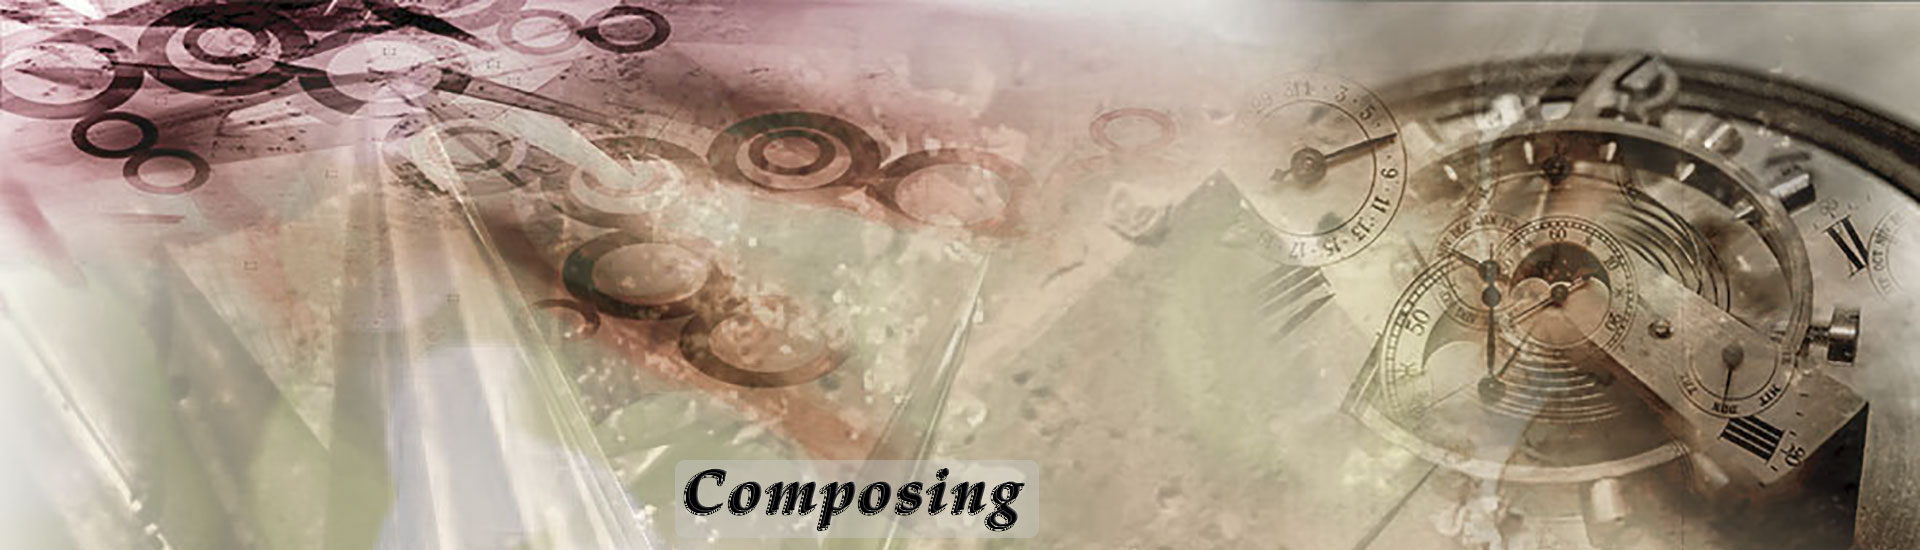 Composings